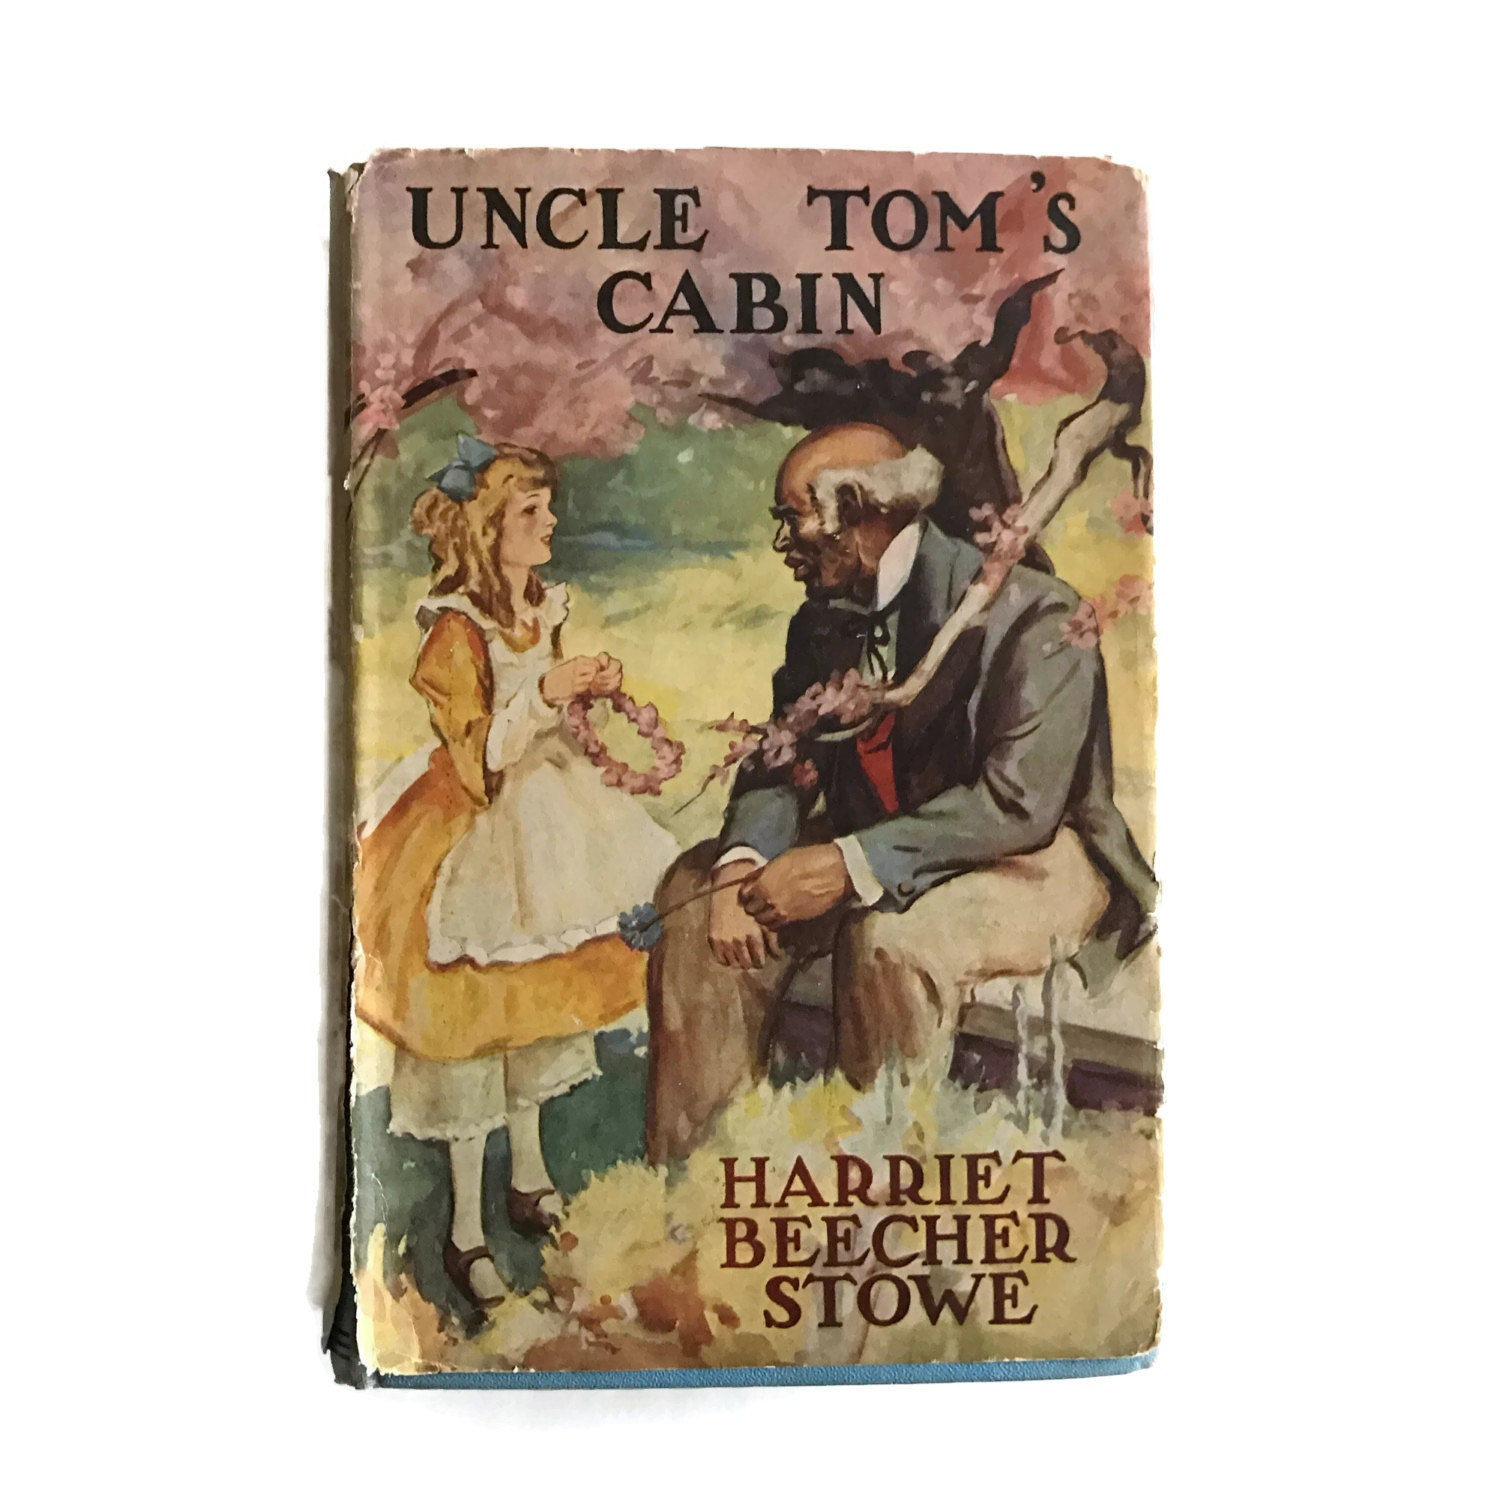 book review on uncle toms cabin Harriet beecher stowe's anti-slavery novel, uncle tom's cabin, is published the book had a major influence on the way the american public viewed slavery.